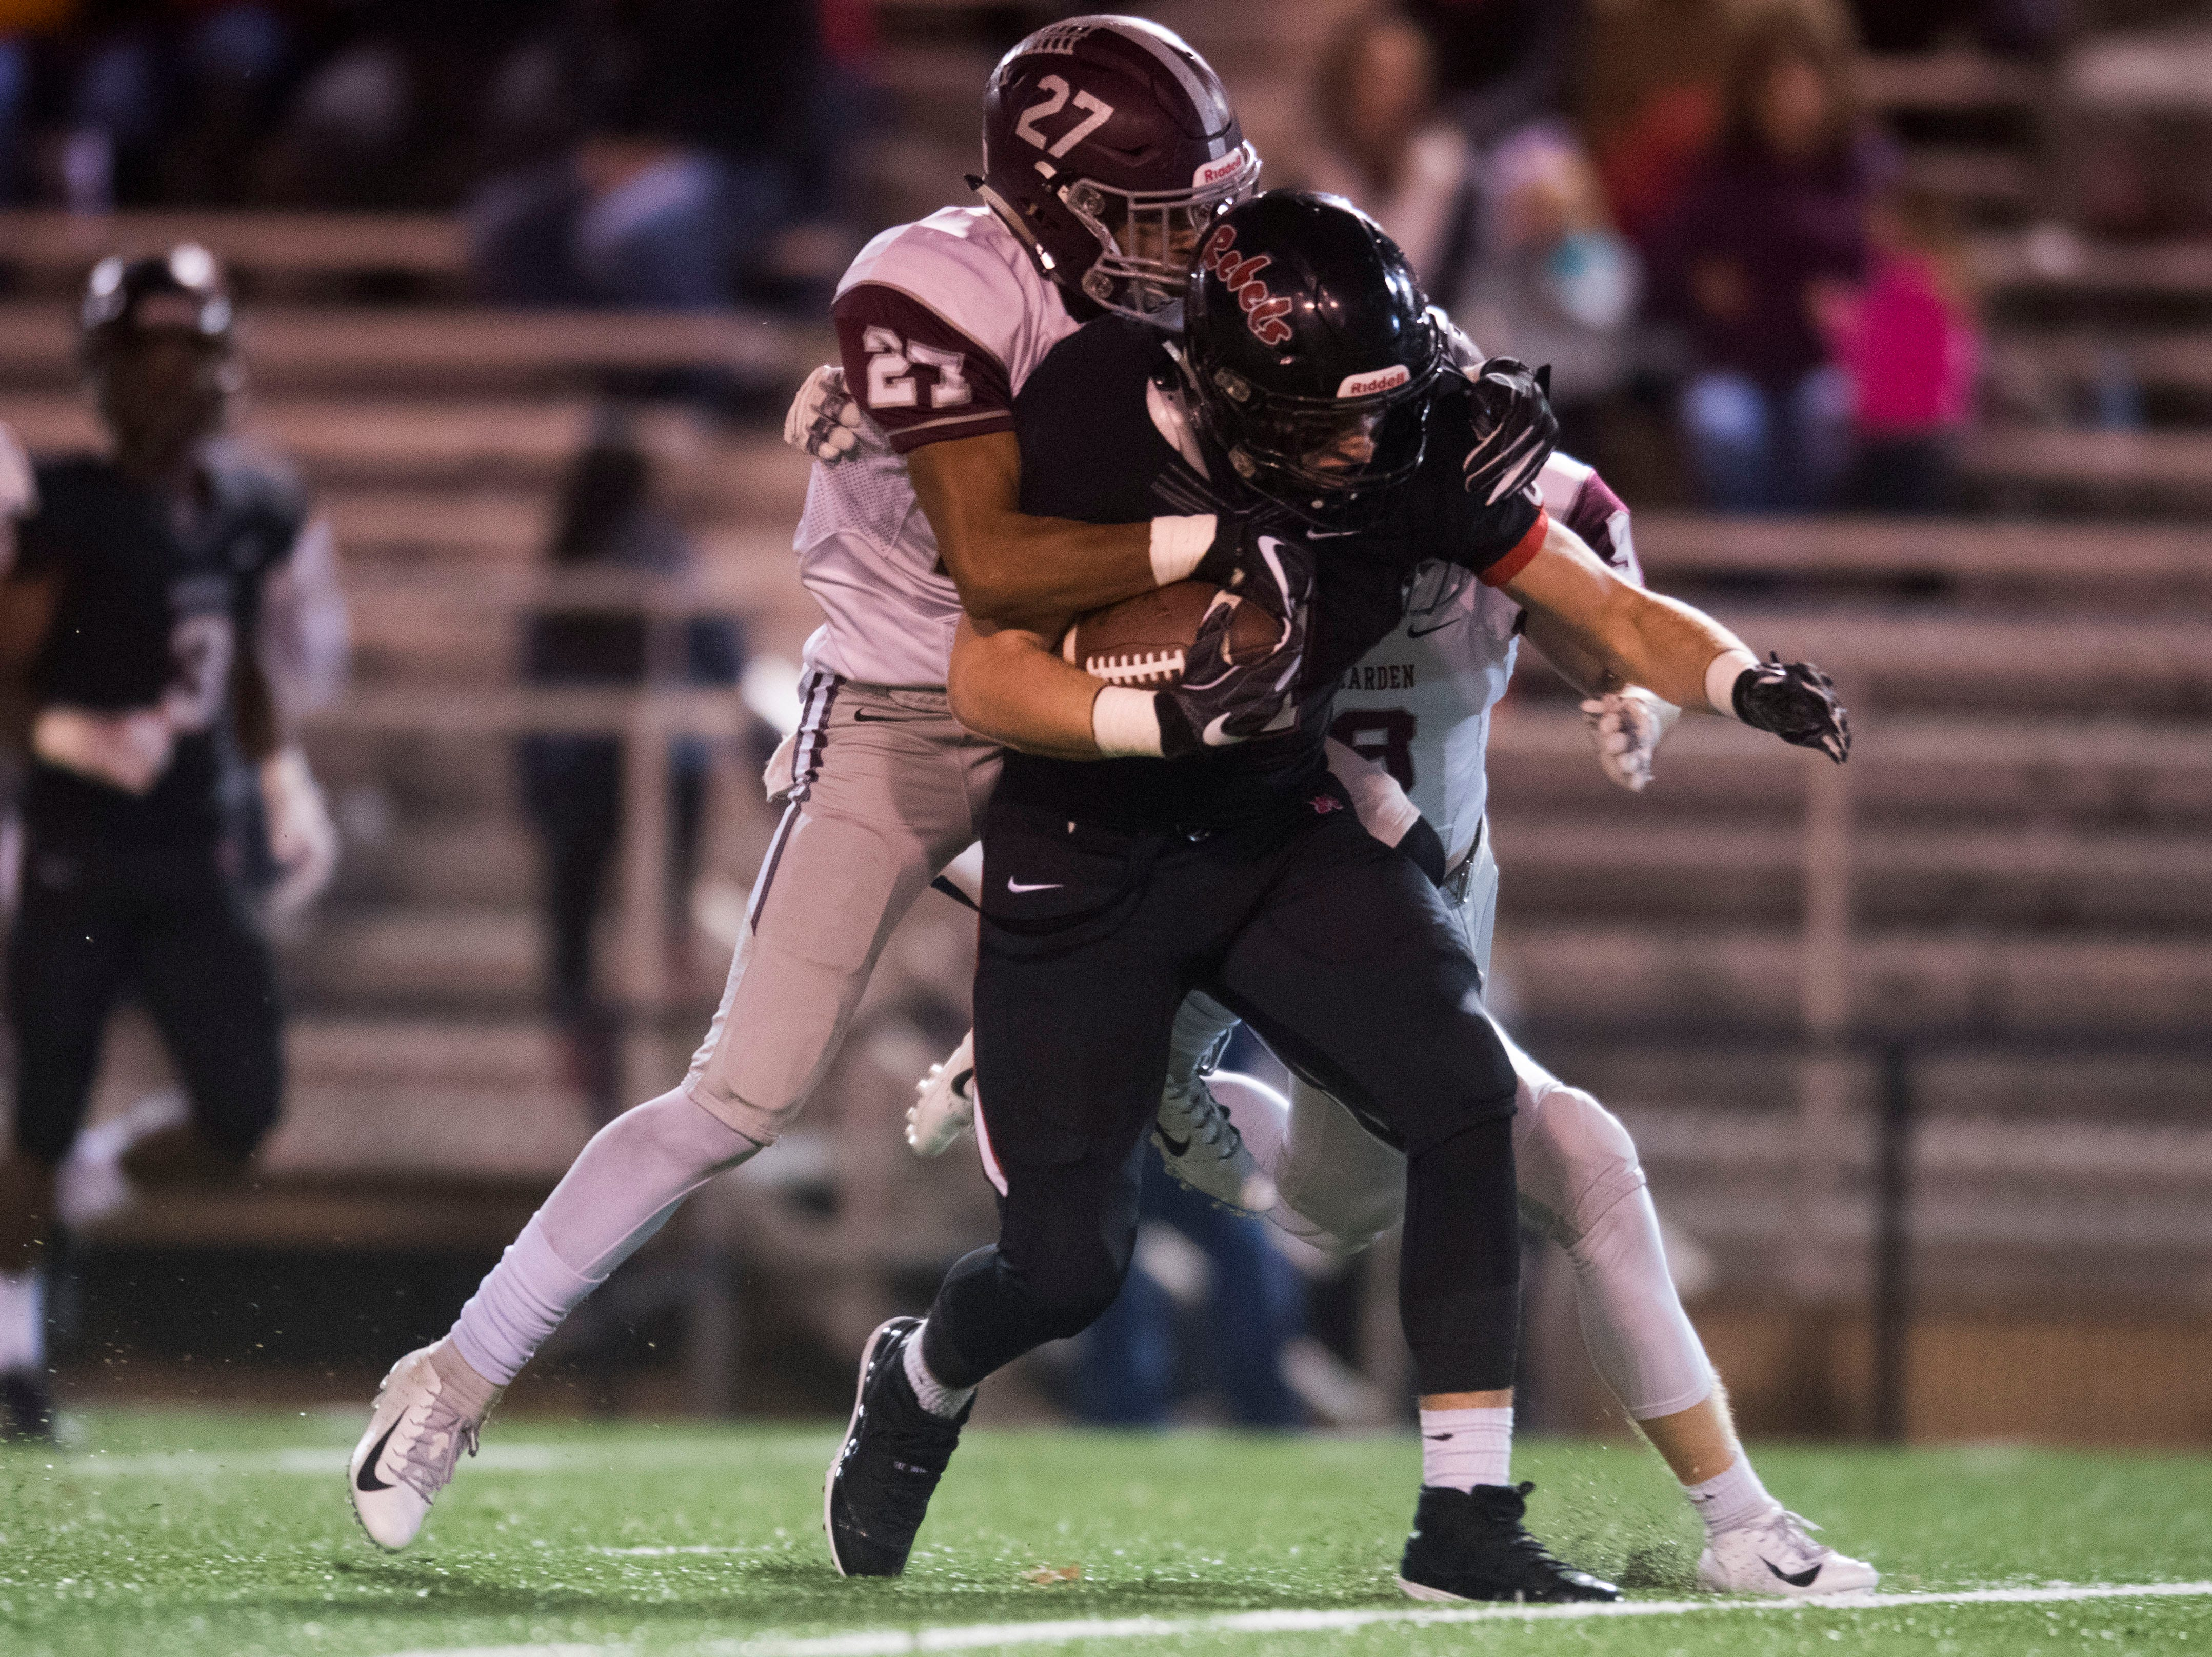 Bearden's Julian Kendrick (27) tackles a Maryville player during a first round playoff game between Maryville and Bearden at Maryville, Friday, Nov. 2, 2018. Maryville defeated Bearden 28-7.